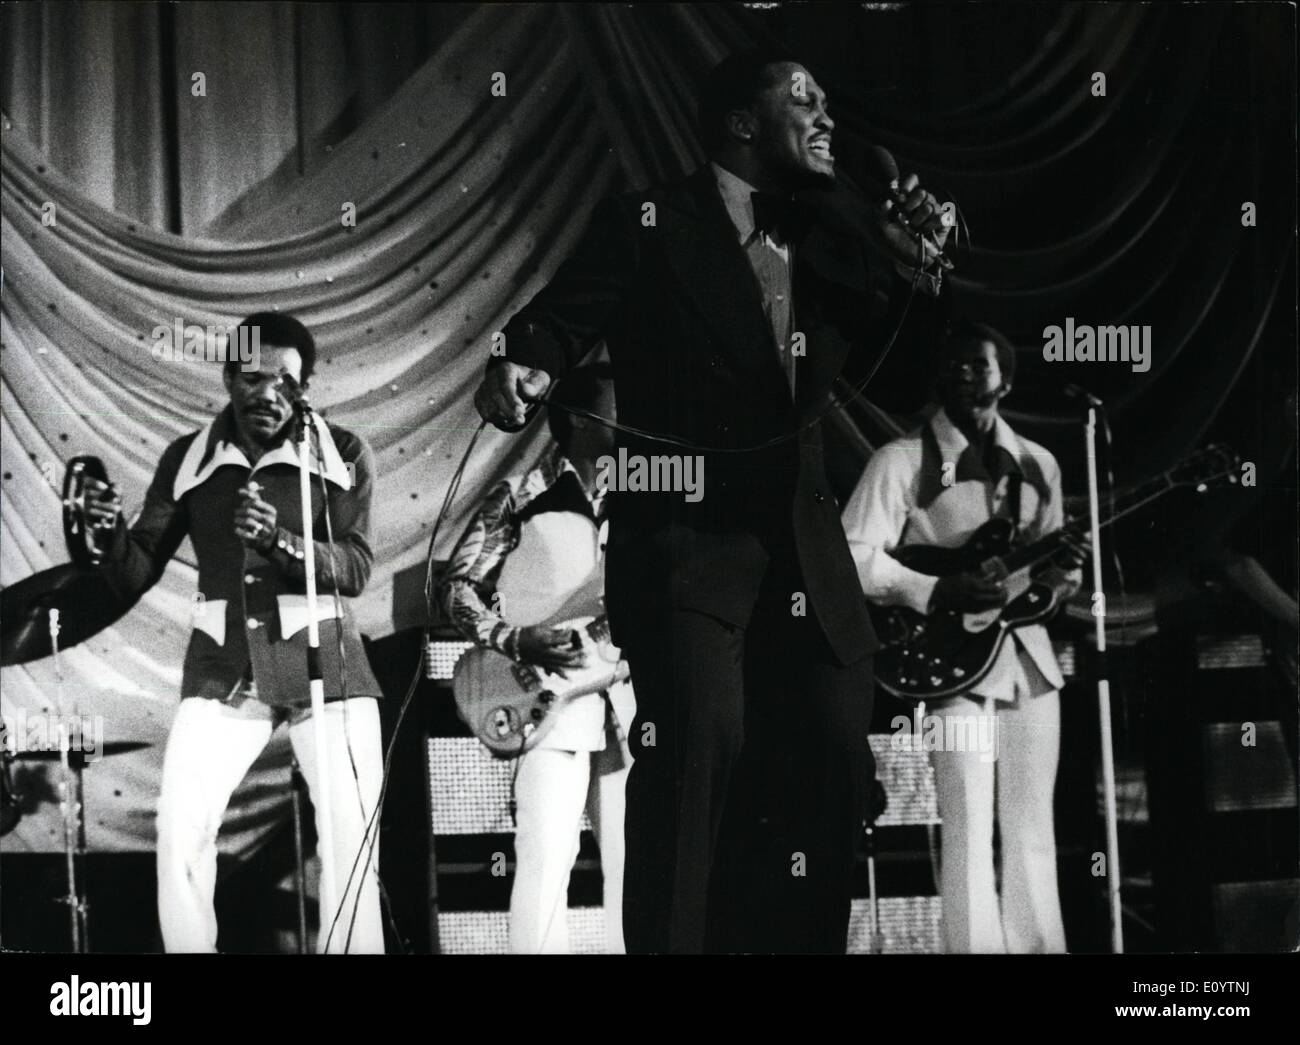 Jun. 06, 1971 - Joe Frazier sings. Photo shows World heavyweight boxing champion Joe Frazier , pictured on stage during his singing appearance at the Granada Theatre, Tooting last night. He was supported by his group the Knockbuts. - Stock Image